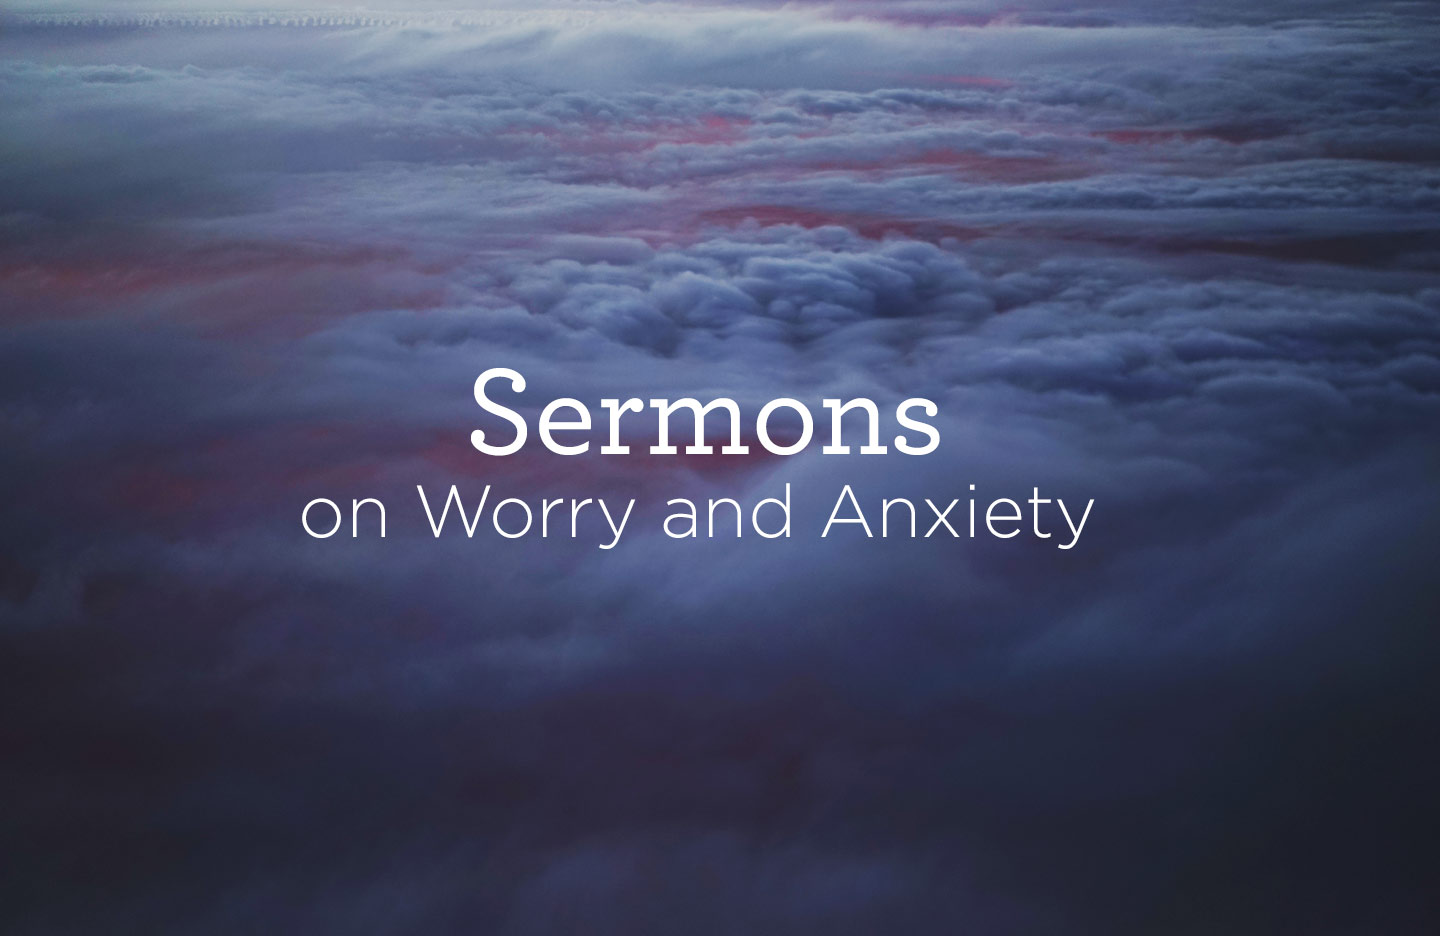 Sermons on Worry and Anxiety